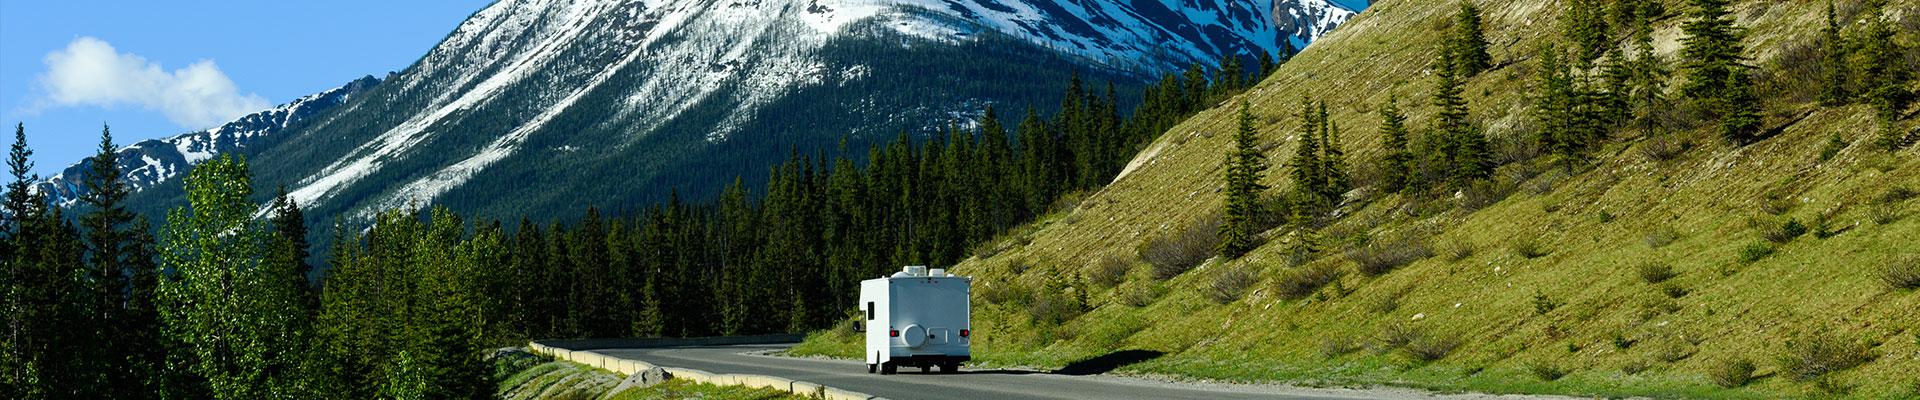 Fantasy RV Tours Offers Club Tours